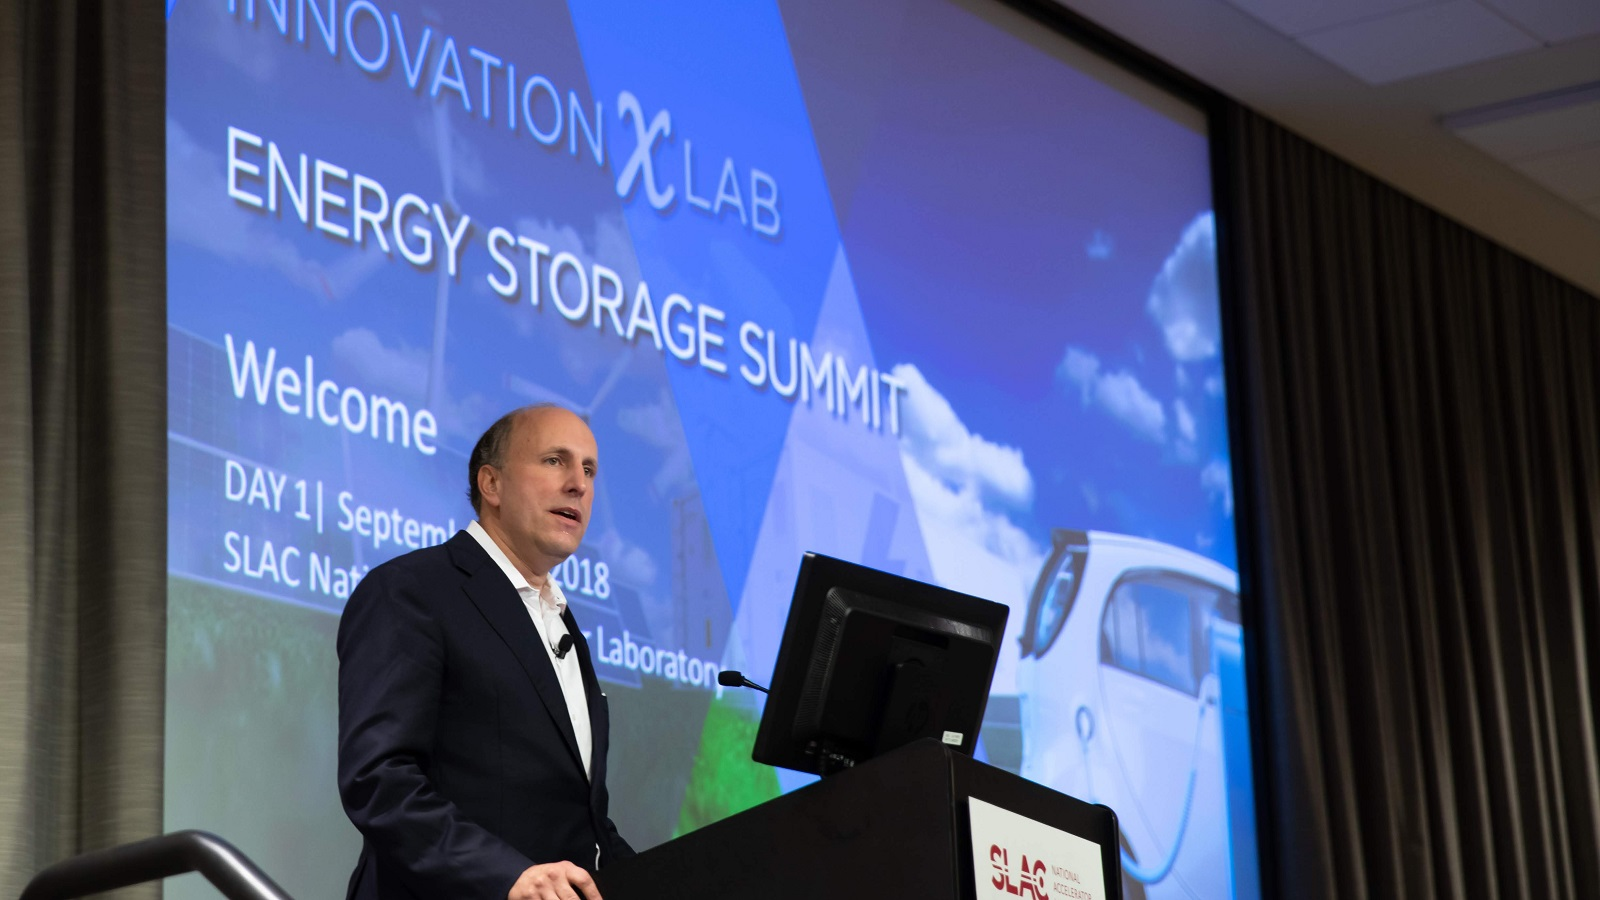 DOE Under Secretary for Science Paul Dabbar announced the renewal of the Joint Center for Energy Storage Research at the InnovationXLab Energy Storage Summit this morning. ( Image  by SLAC National Accelerator Laboratory.)